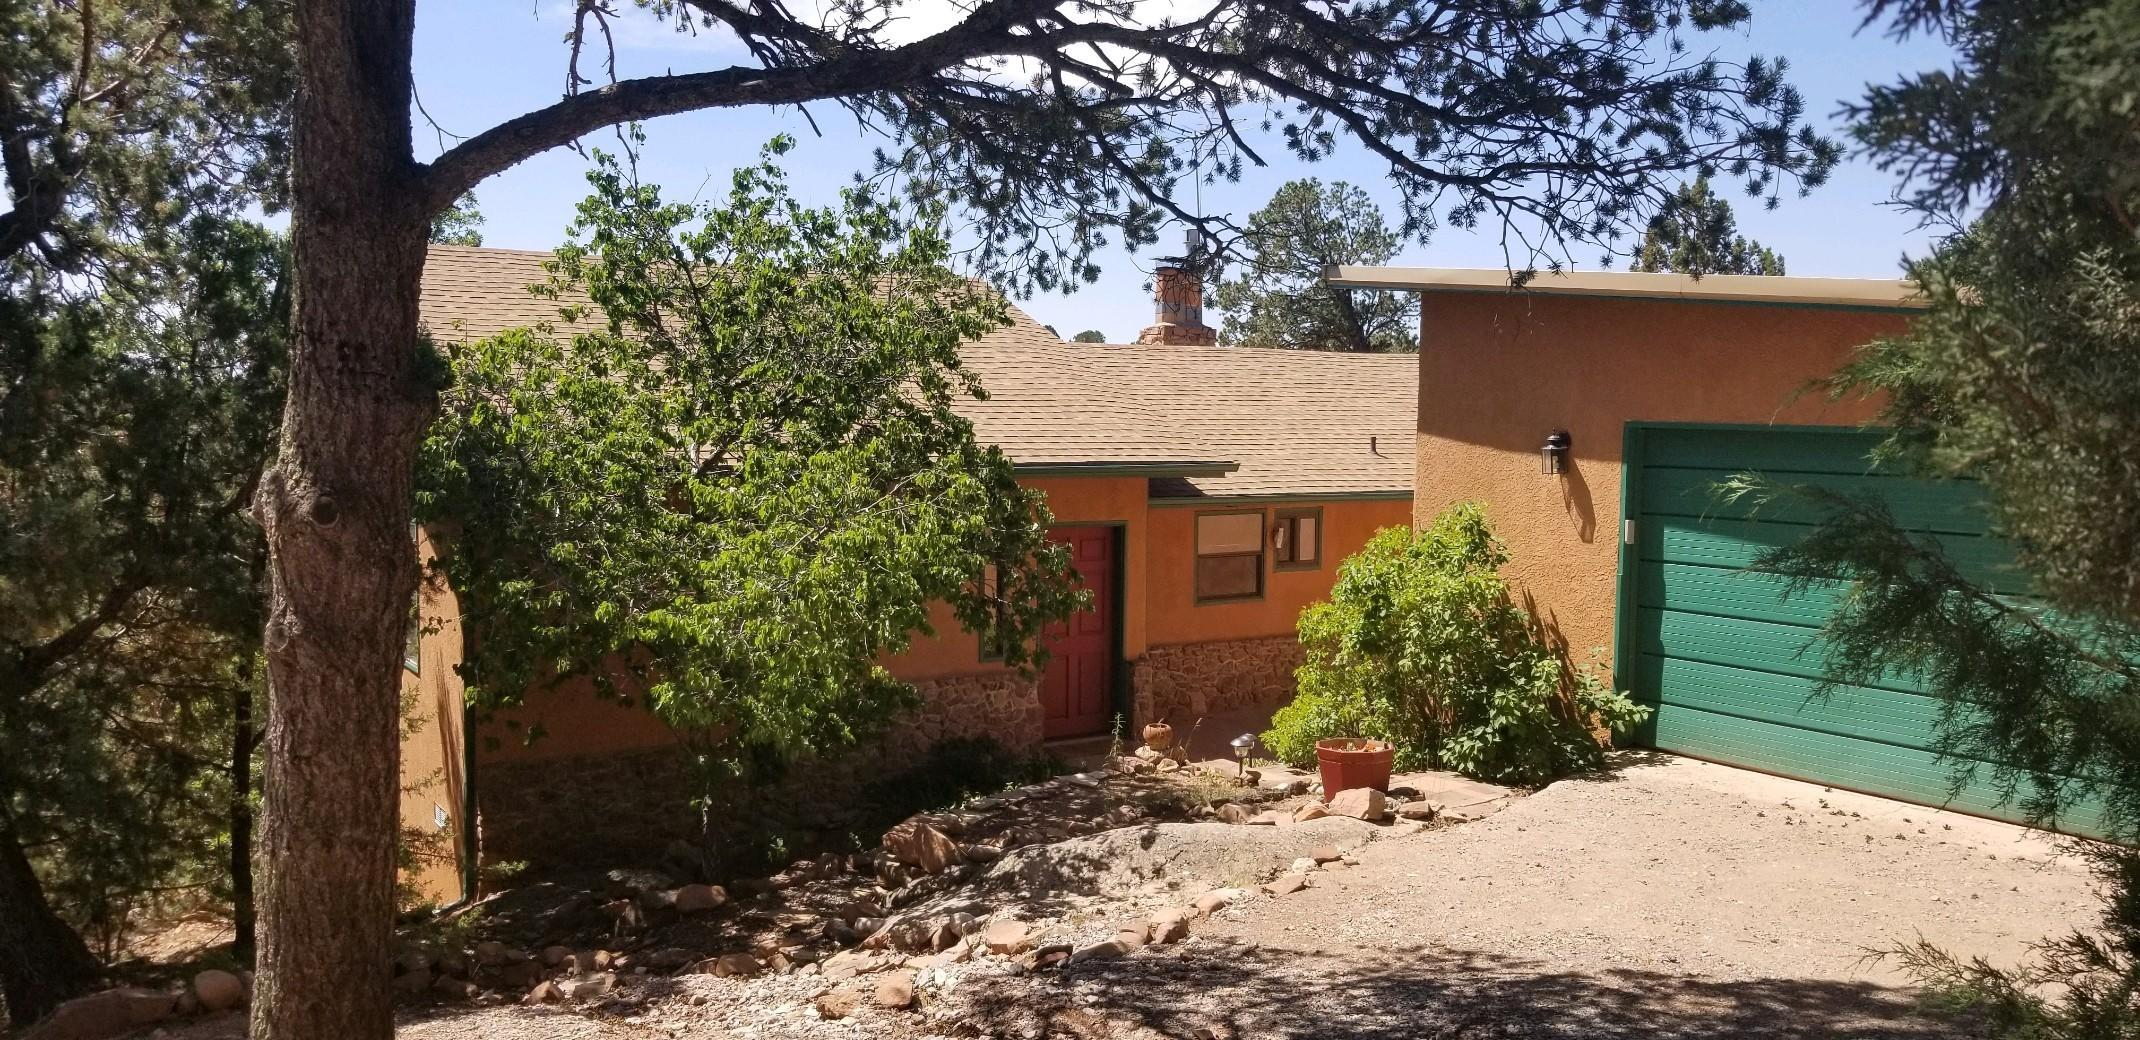 This property, located in the historical Old Sandia Park area, began as a summer cabin in the East Mountains in the early 1940's, then became a year-round home early 1950's. Tucked in next to the Cibola National Forest, there is hiking, snow shoeing, horse trails, and just 6 miles from Sandia Peak Ski area.  Come spring lilacs & iris are in bloom, summer offers a harvest from the fruit trees, fall is golden when leaves turn & hot air balloons are soaring.  Sit with a morning cup of coffee as the sun warms the large sunroom on a brisk winter's day & ward-off the evening chill with a fire in the wood stove or the fireplace - this home stays cozy from the passive solar gain. 1.75 treed acres, a new septic system, & a member of the community water system, make this mountain home complete.